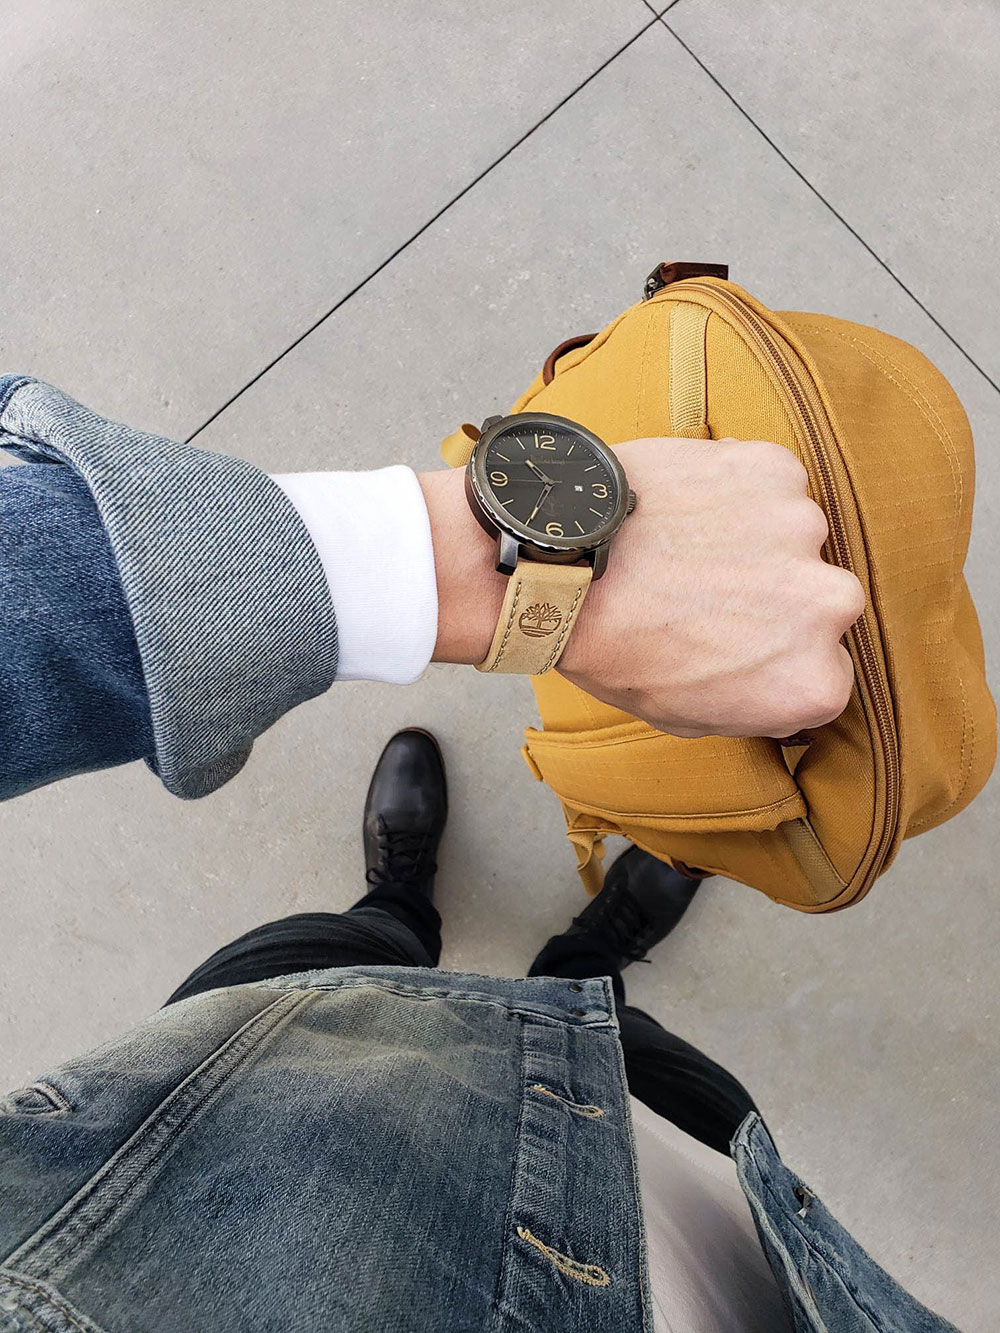 Timberland Watch and Bag